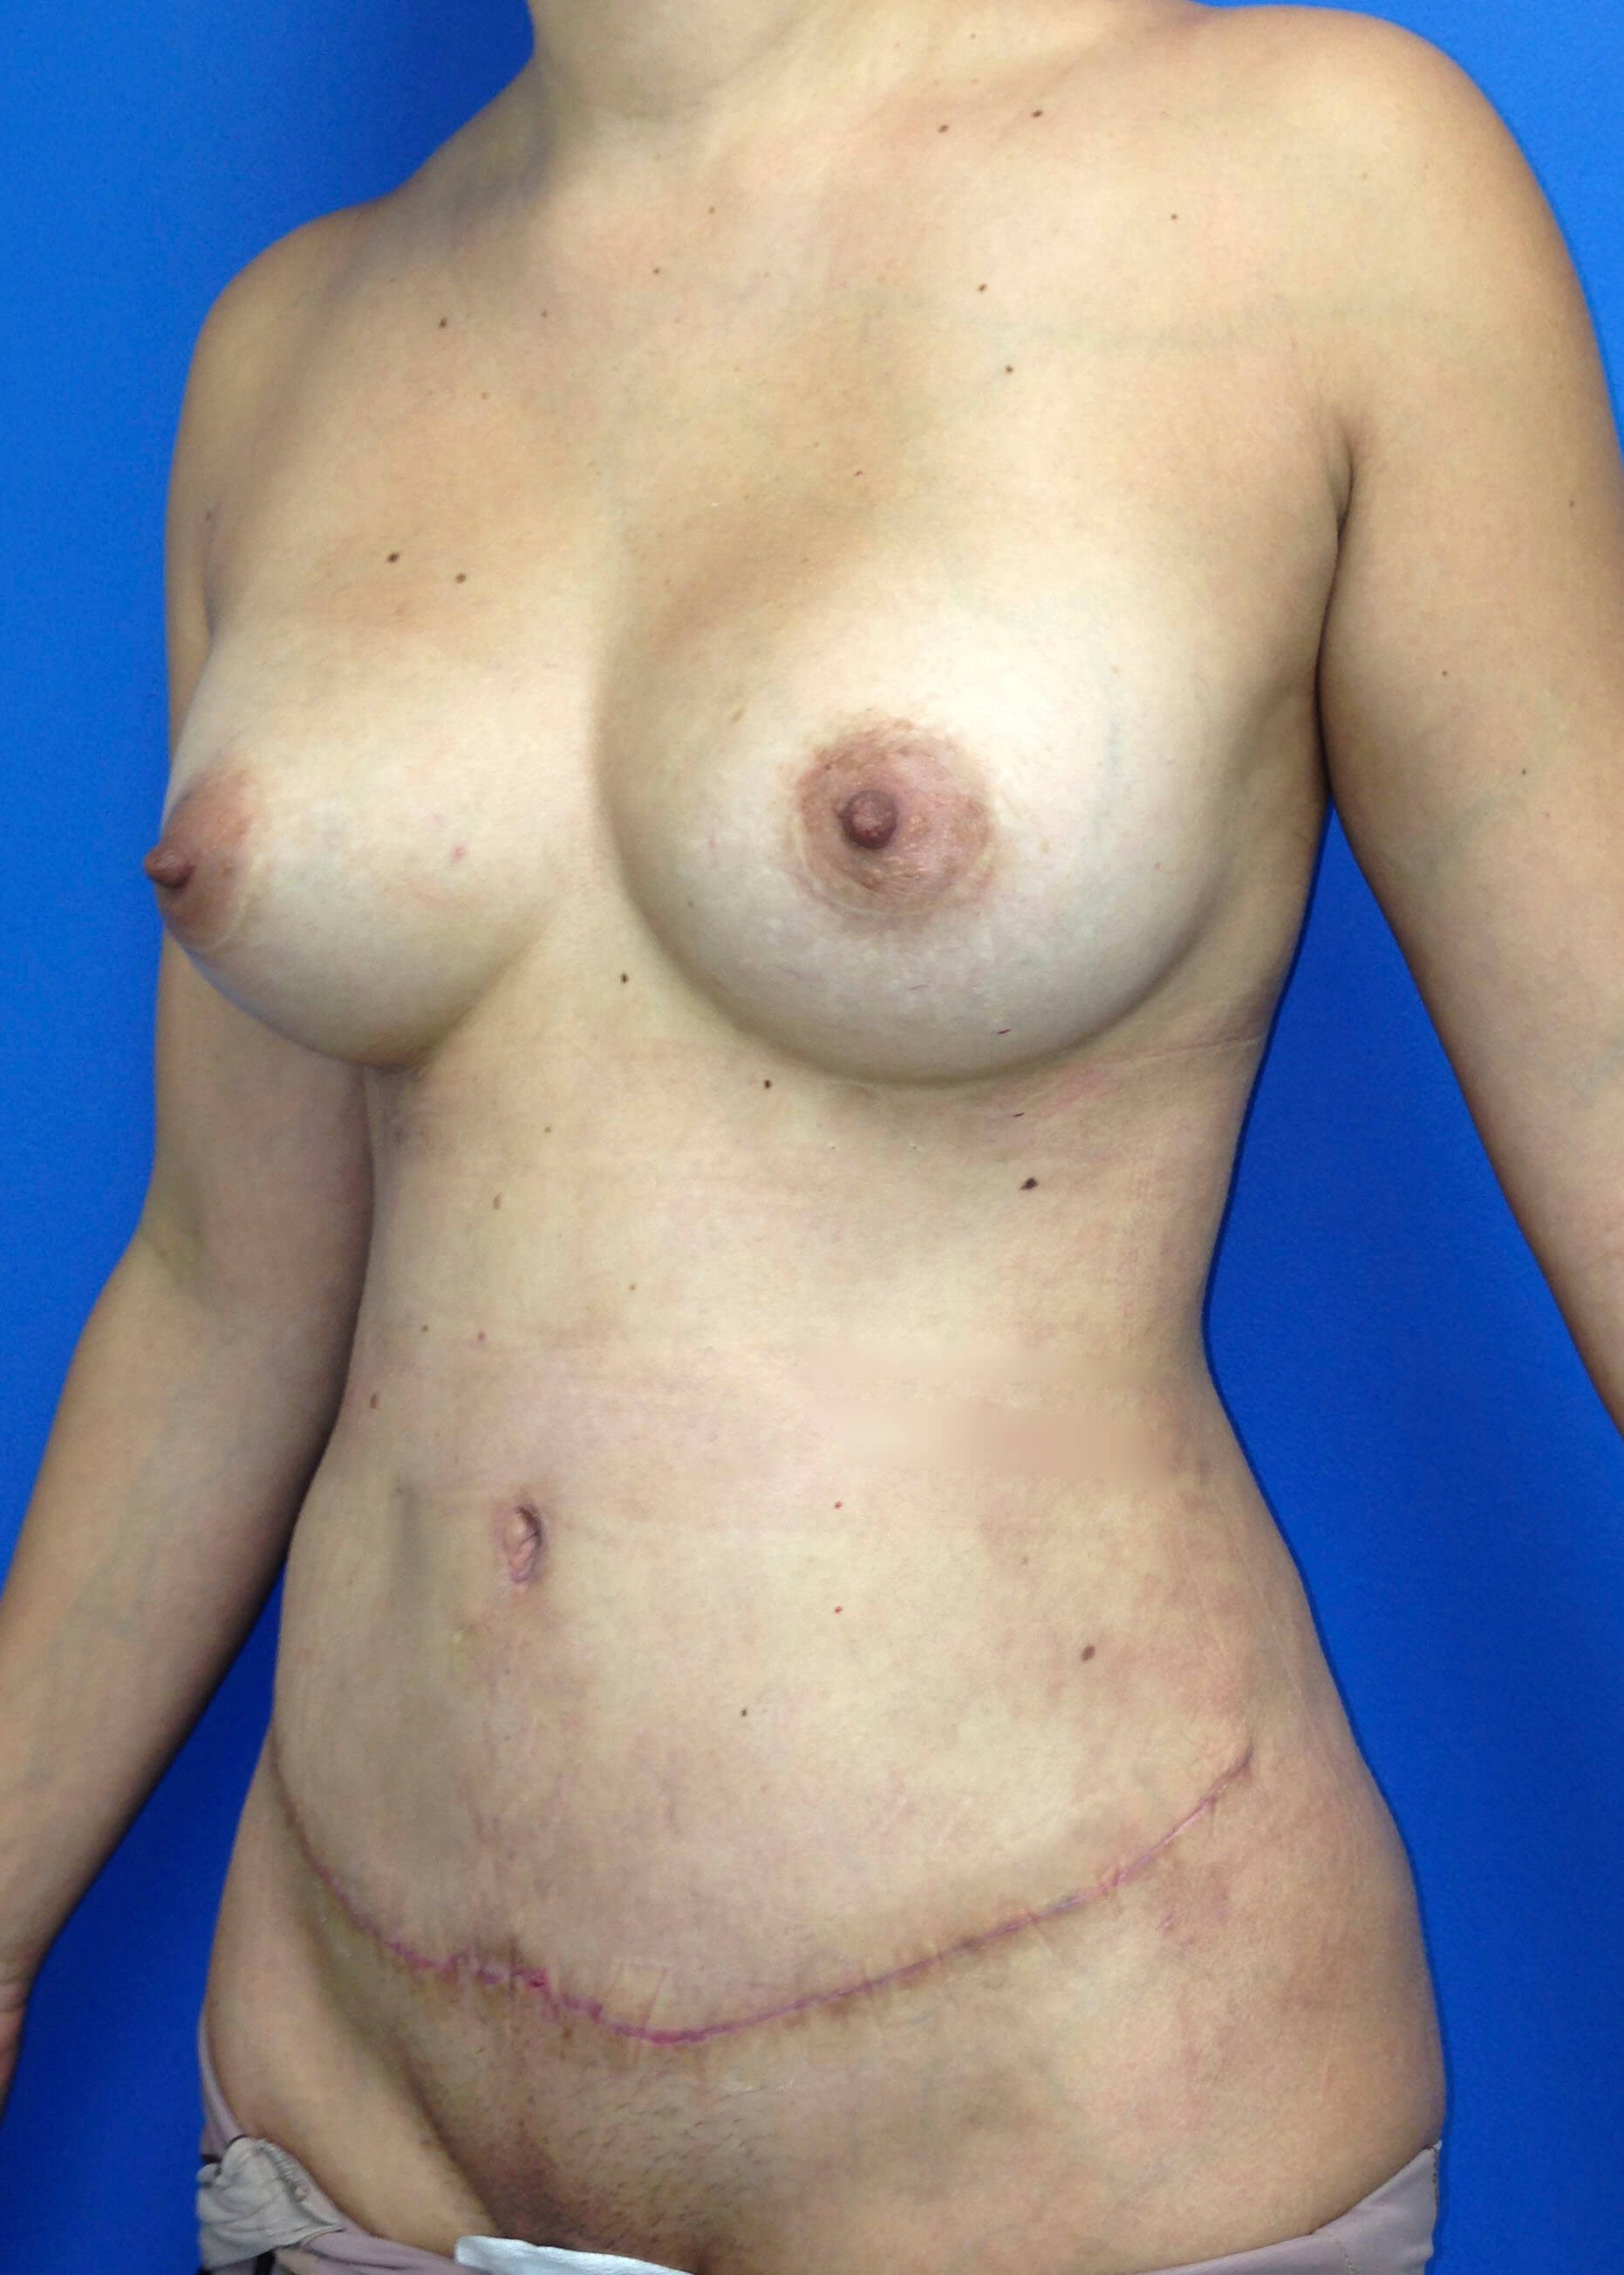 After Tummy Tuck Left Oblique View - Left Oblique View